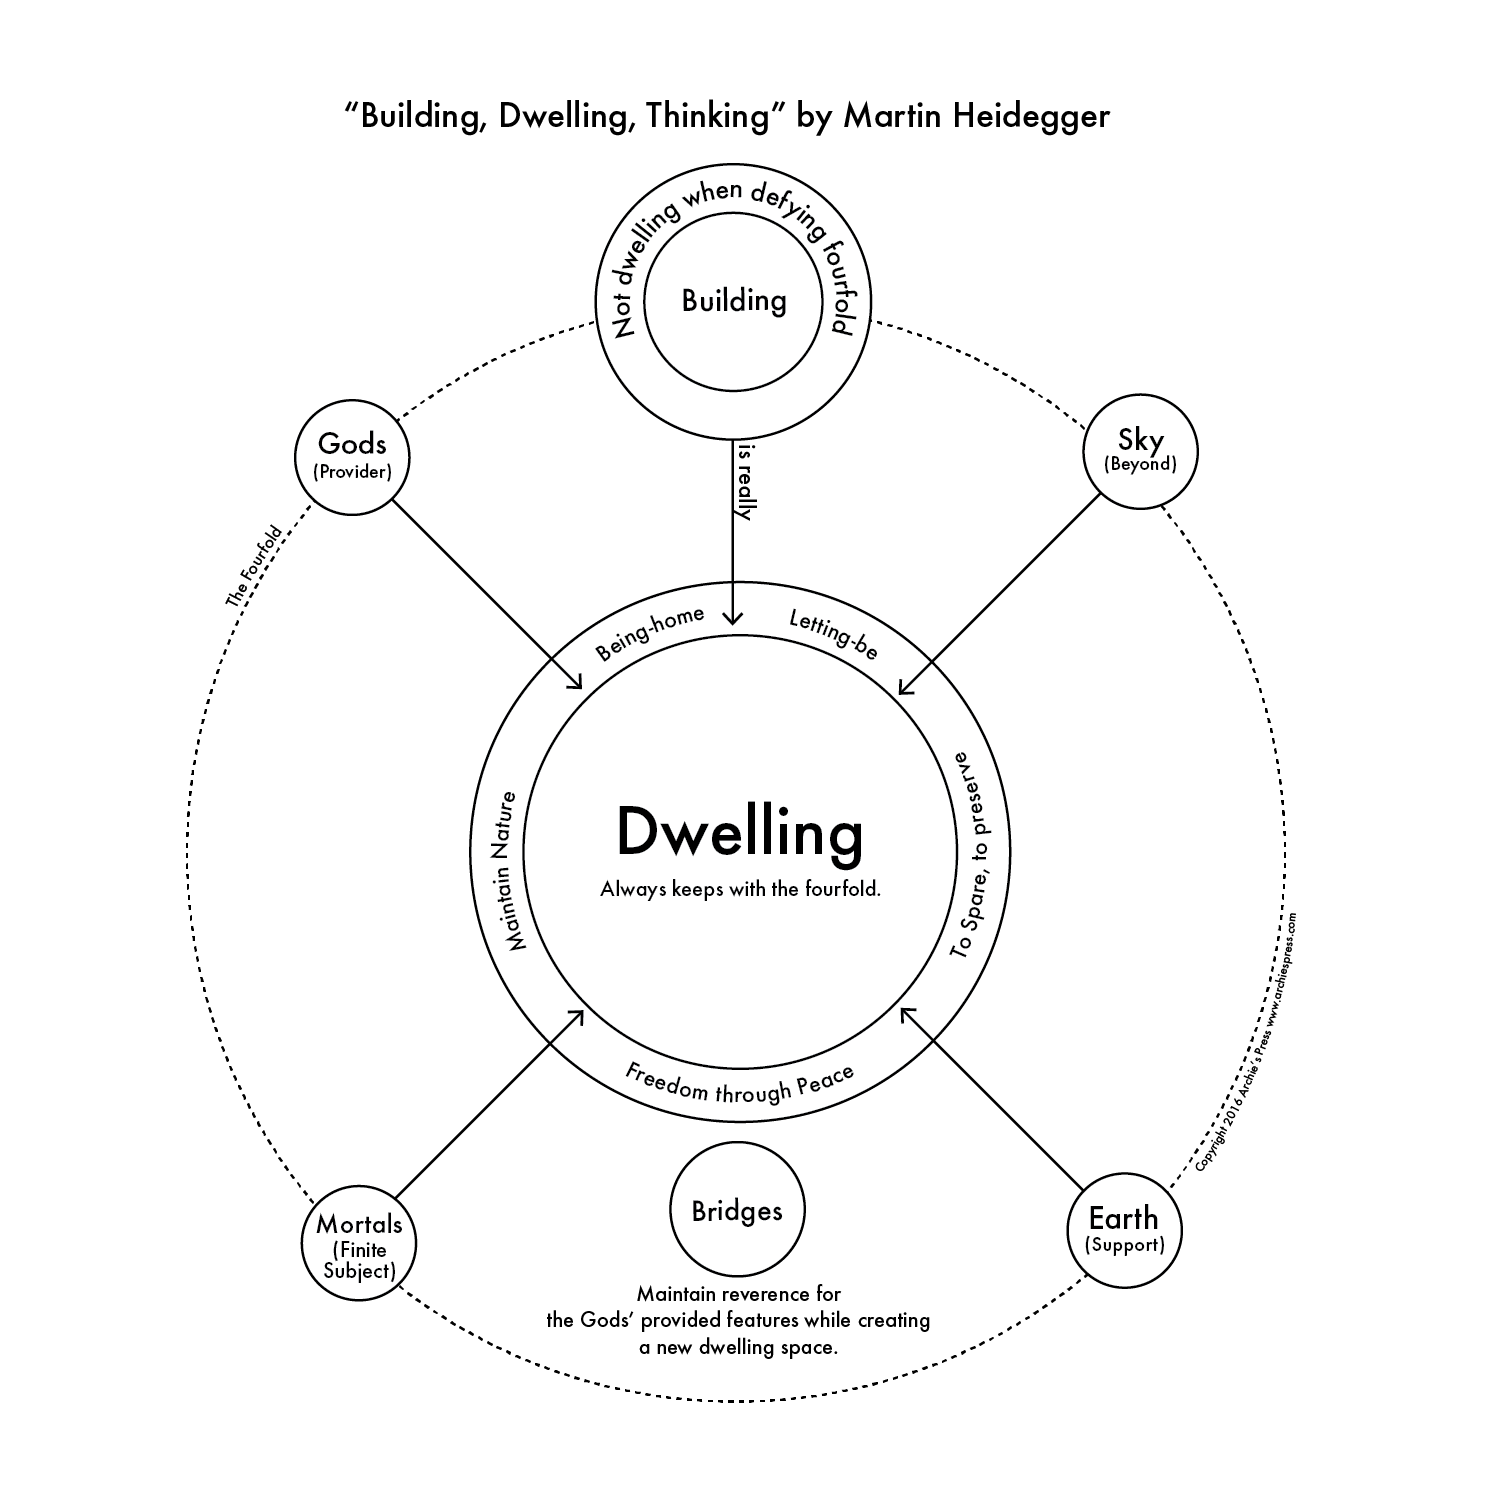 Philosophical Diagram #1: Building Dwelling Thinking